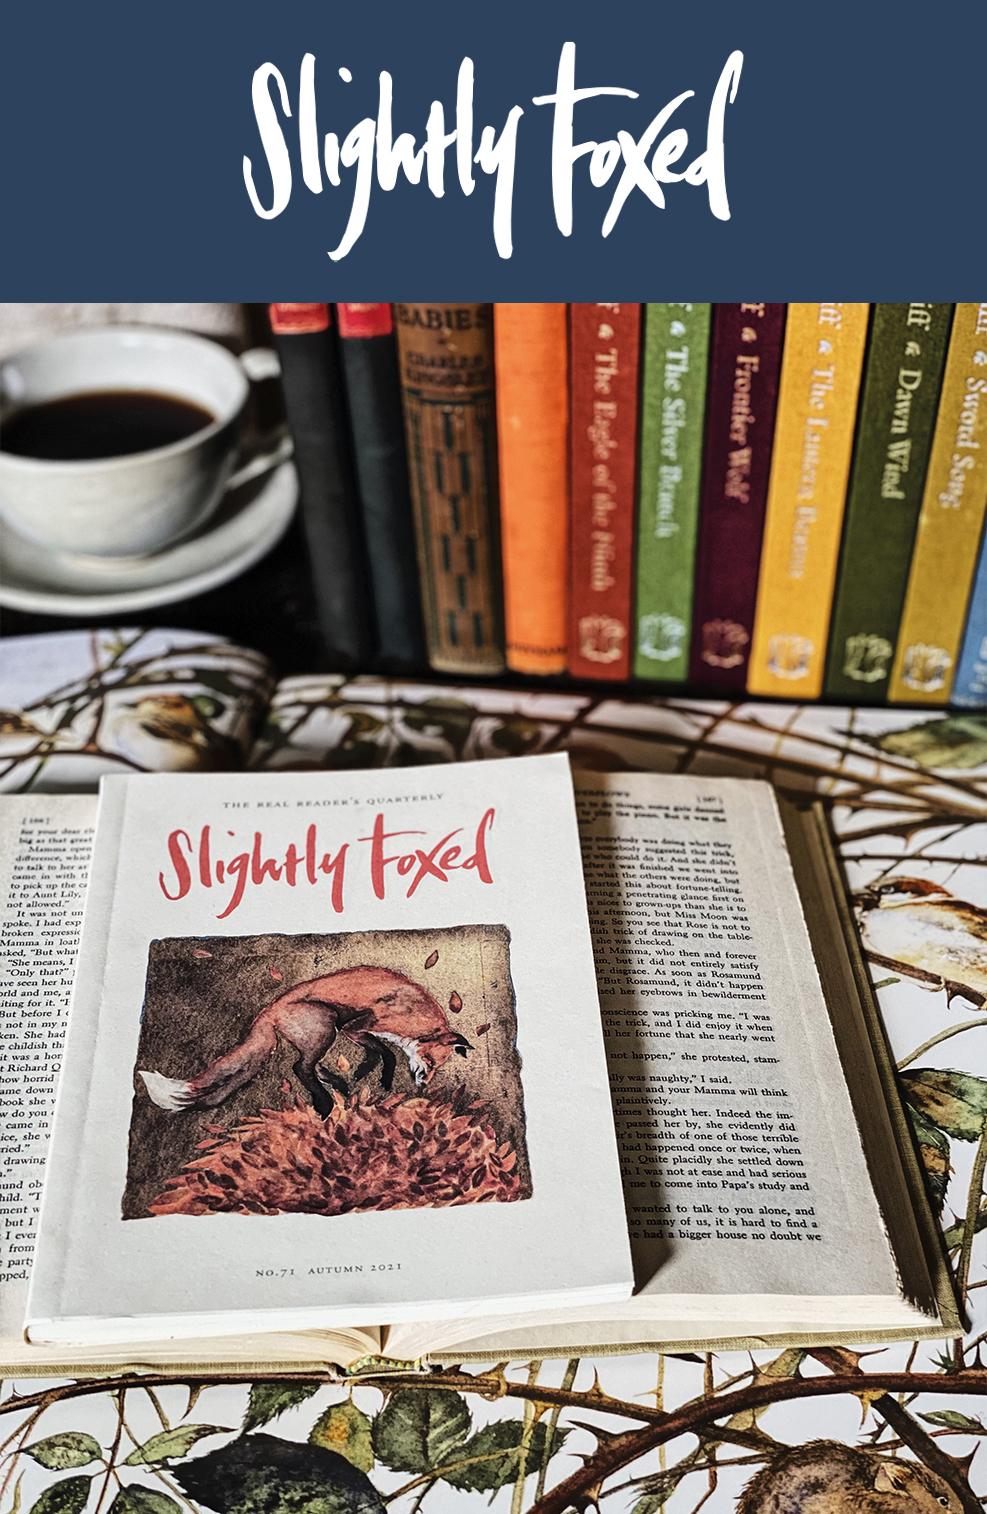 New from Slightly Foxed, Autumn 2021 | Issue 71 of Slightly Foxed Magazine